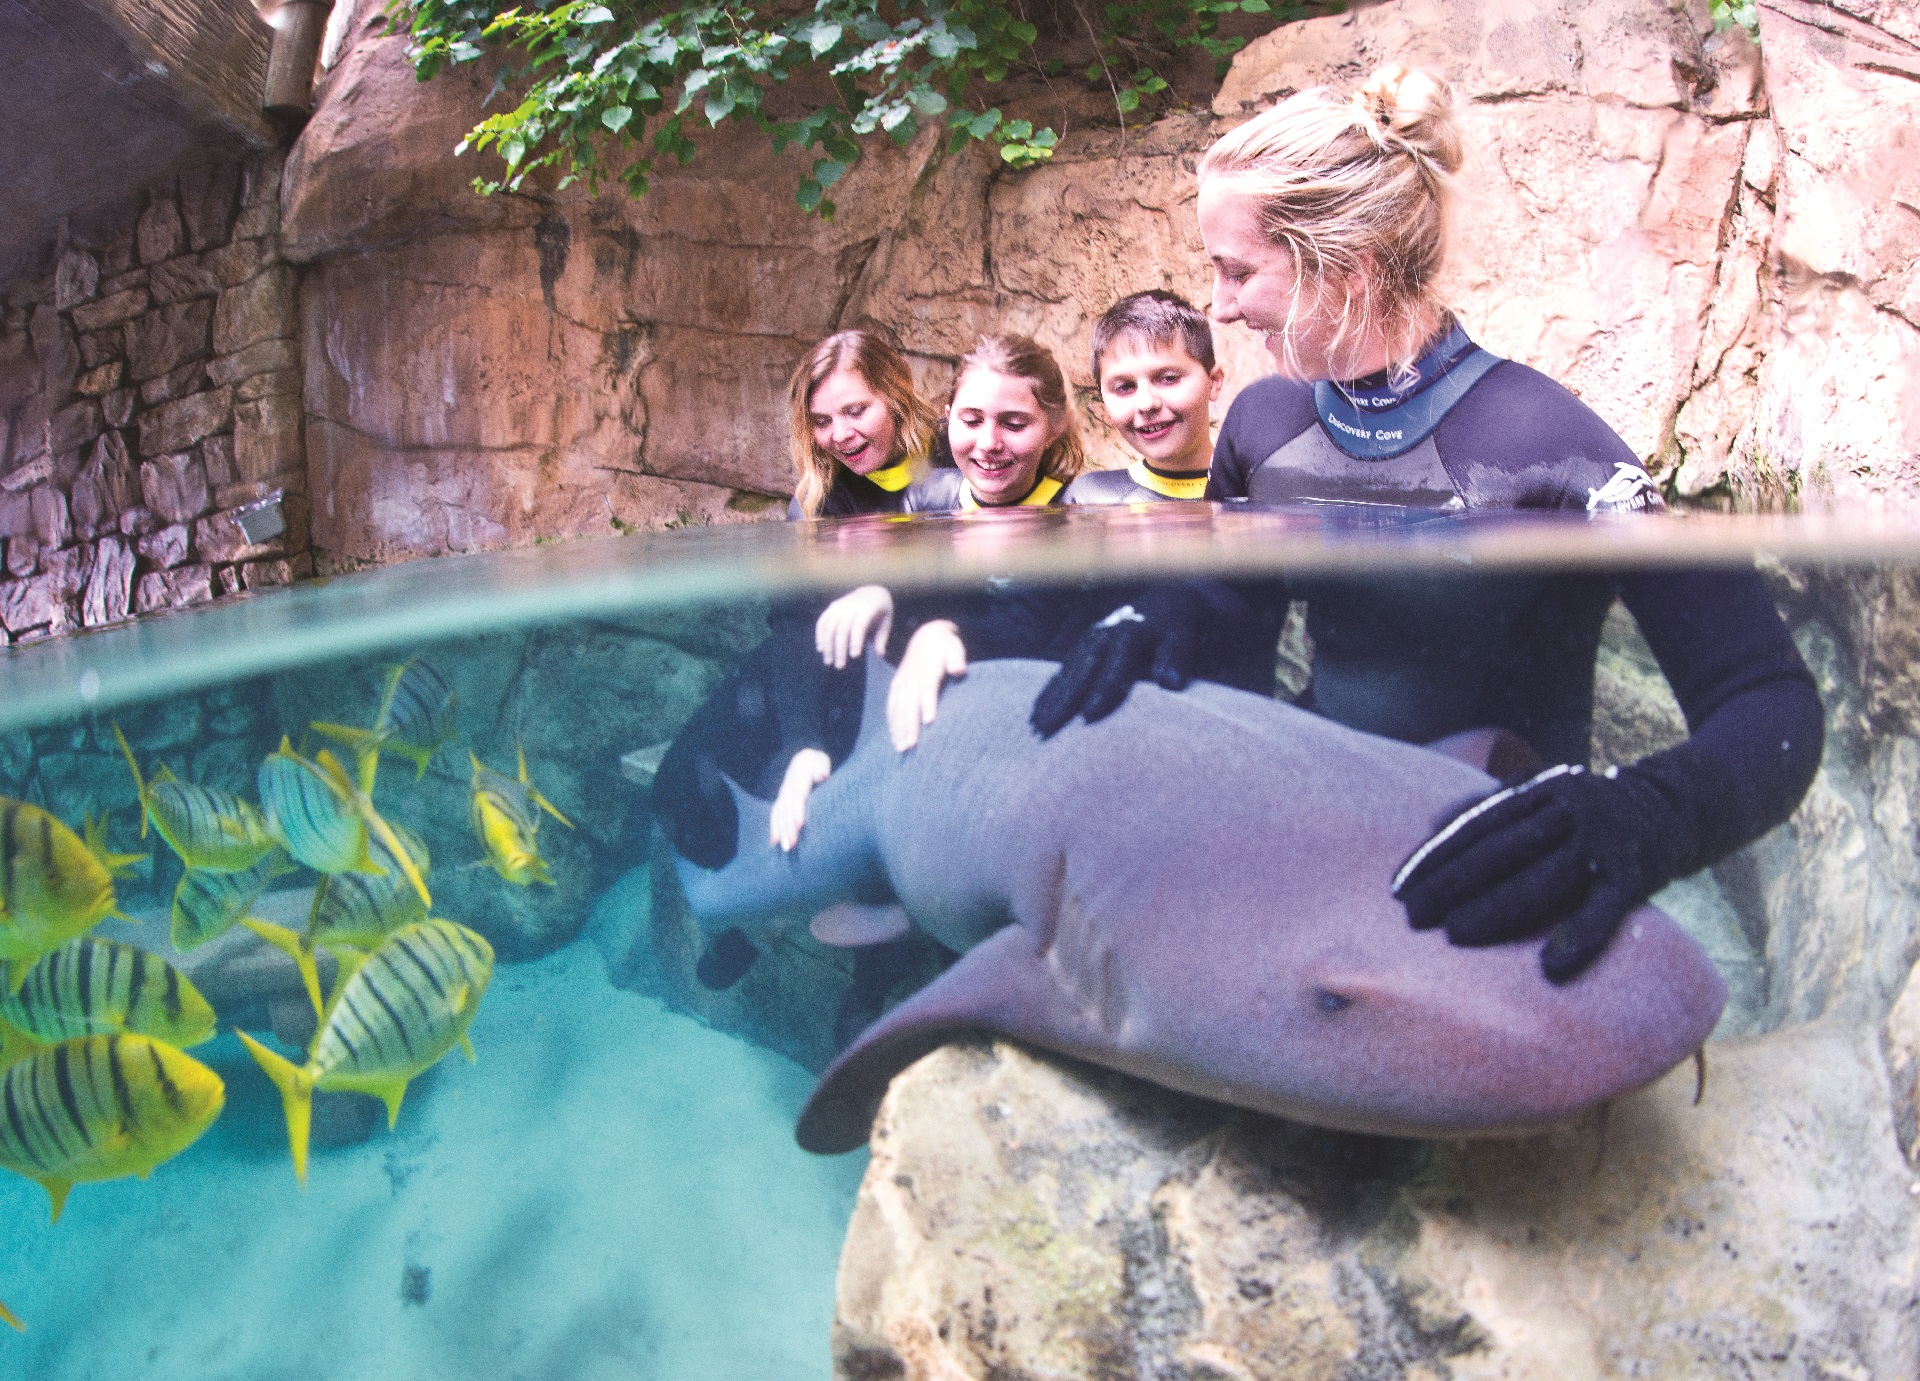 People petting a shark at Sea World Aquarium While on Holiday | The Best Aquariums to Visit on Vacation | Westgate Resorts